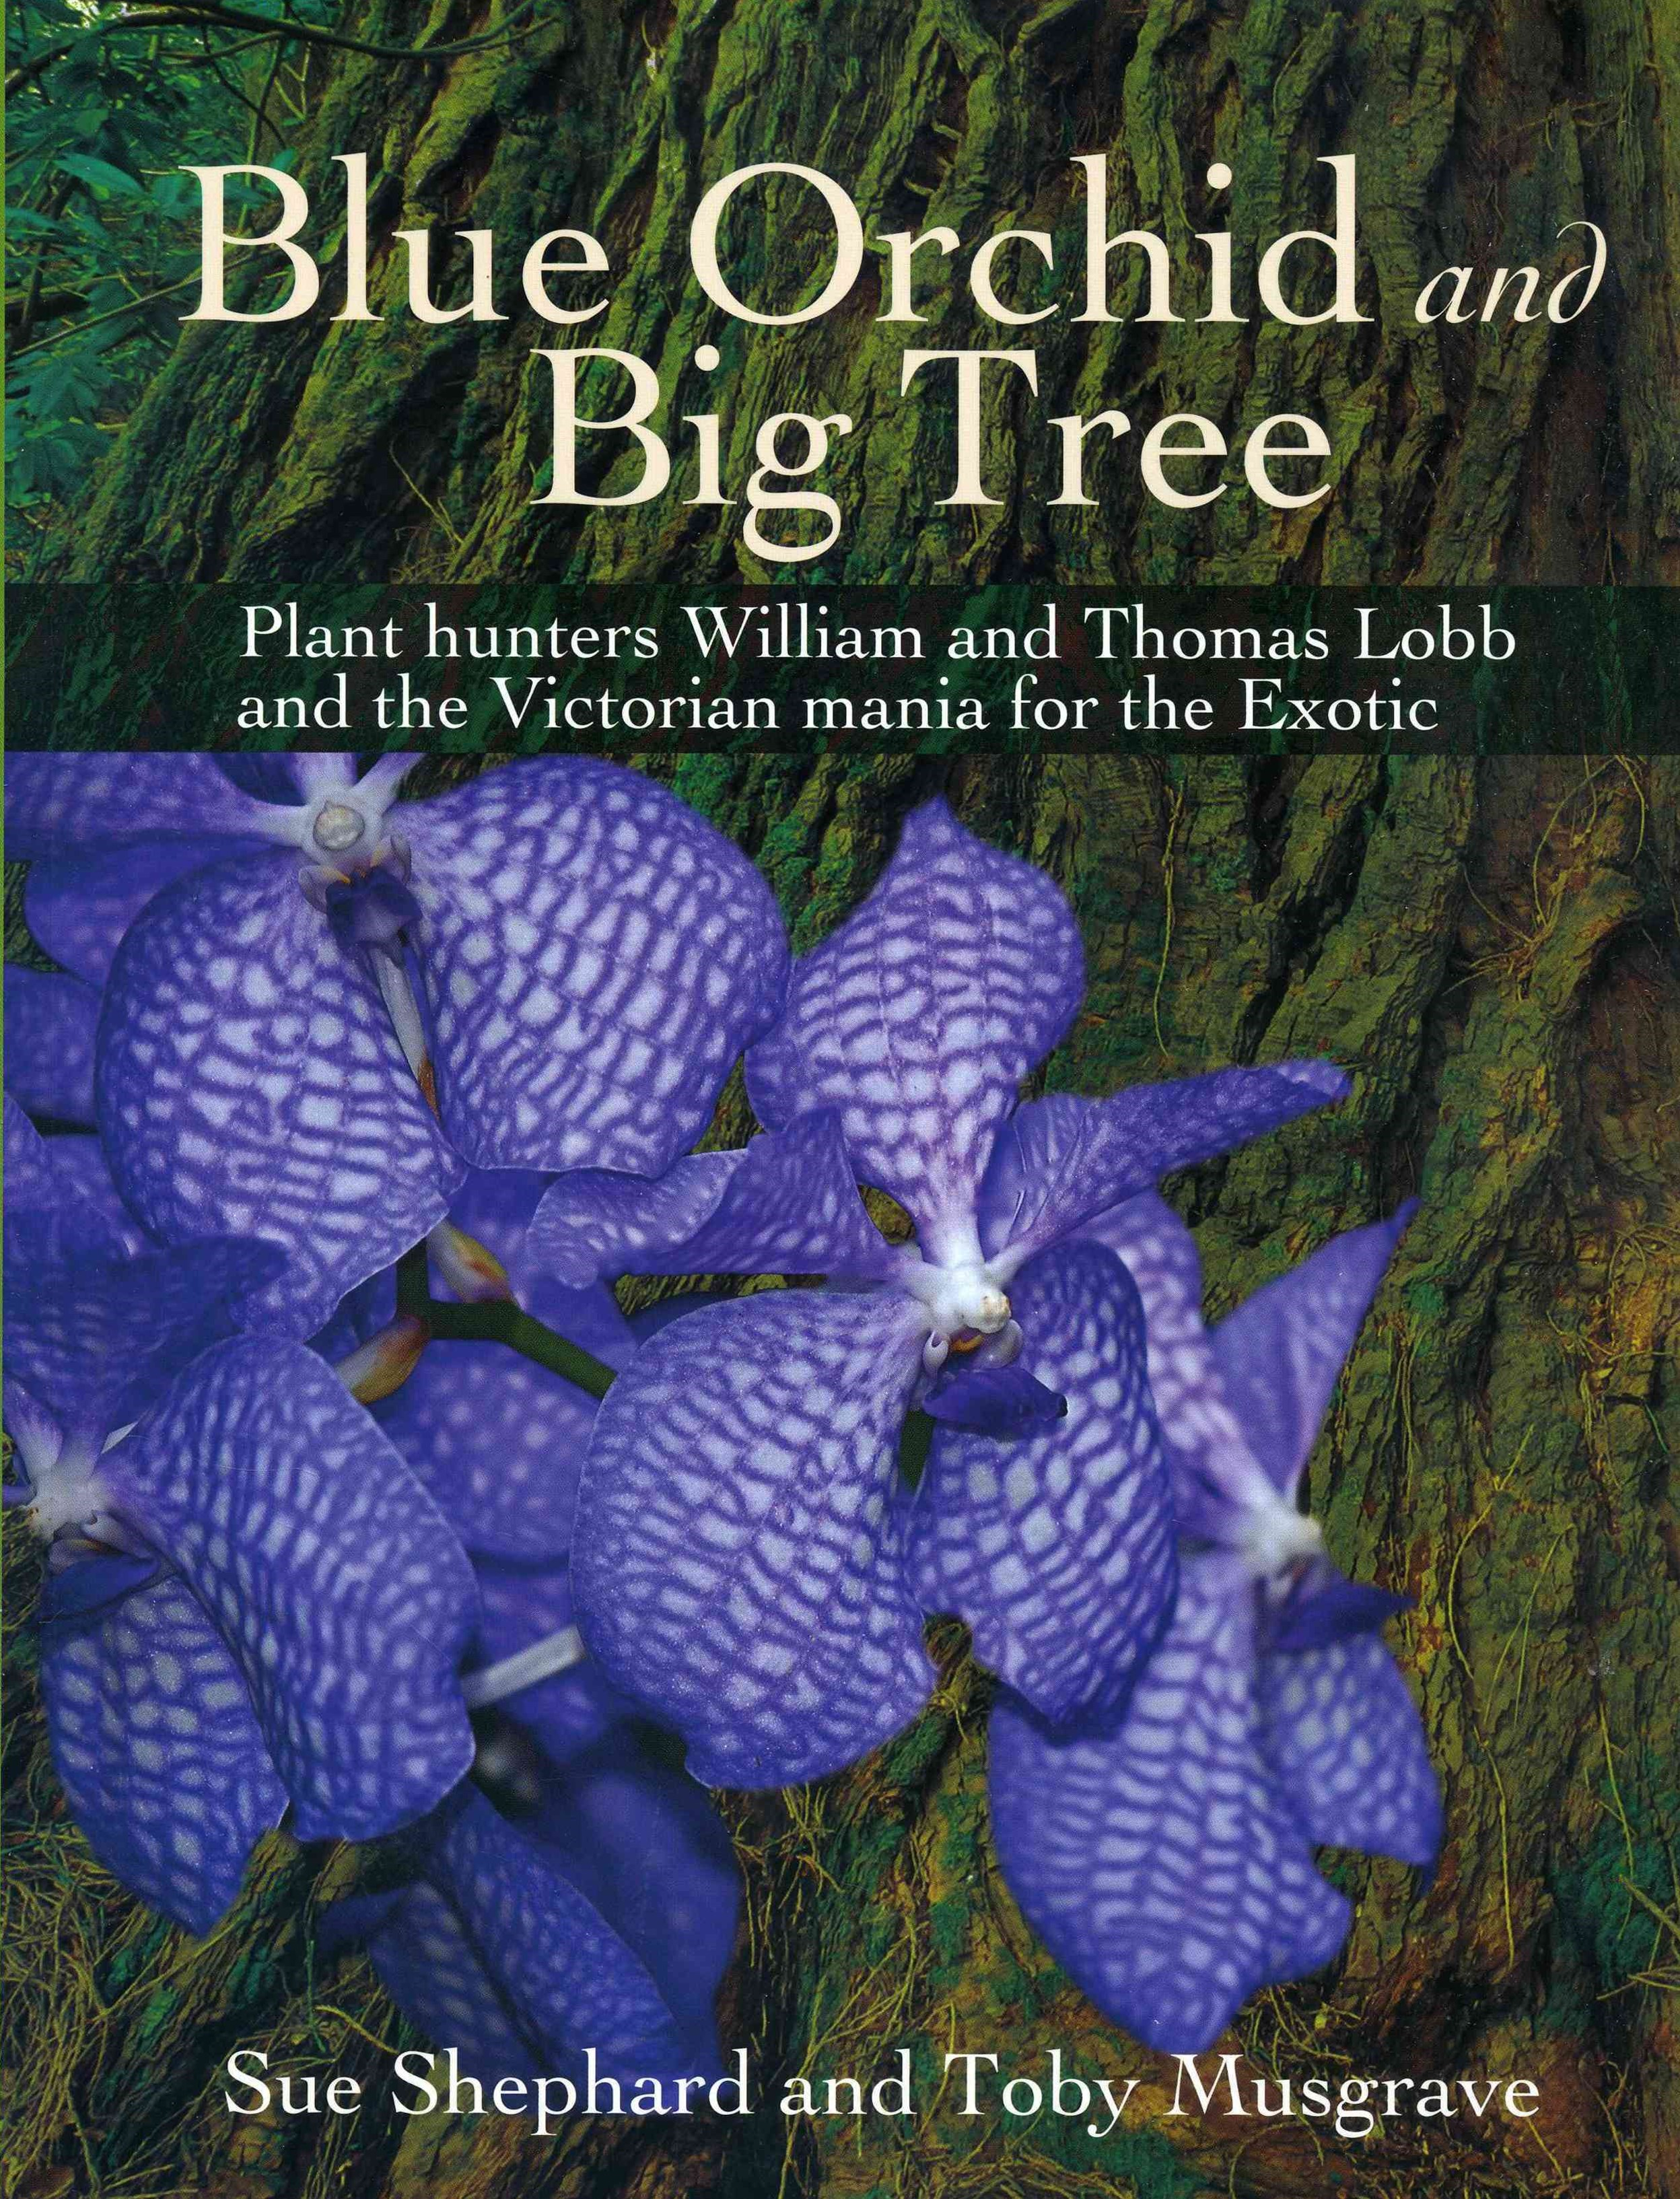 Blue Orchid and Big Tree